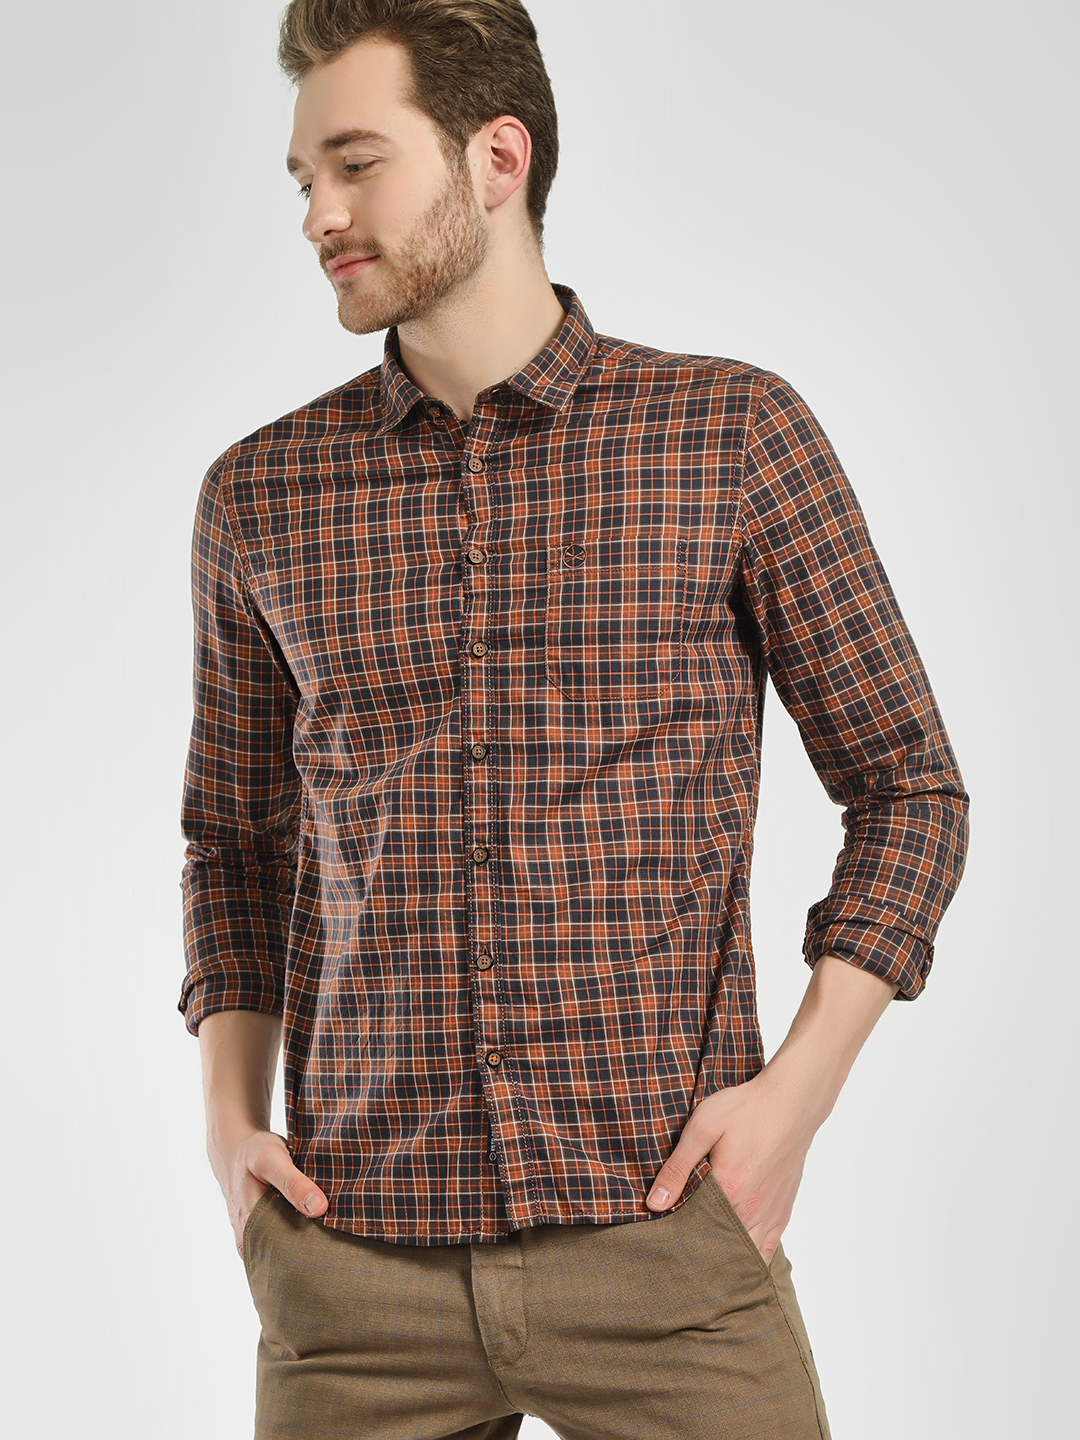 SCULLERS Blue Grid Check Casual Shirt 1